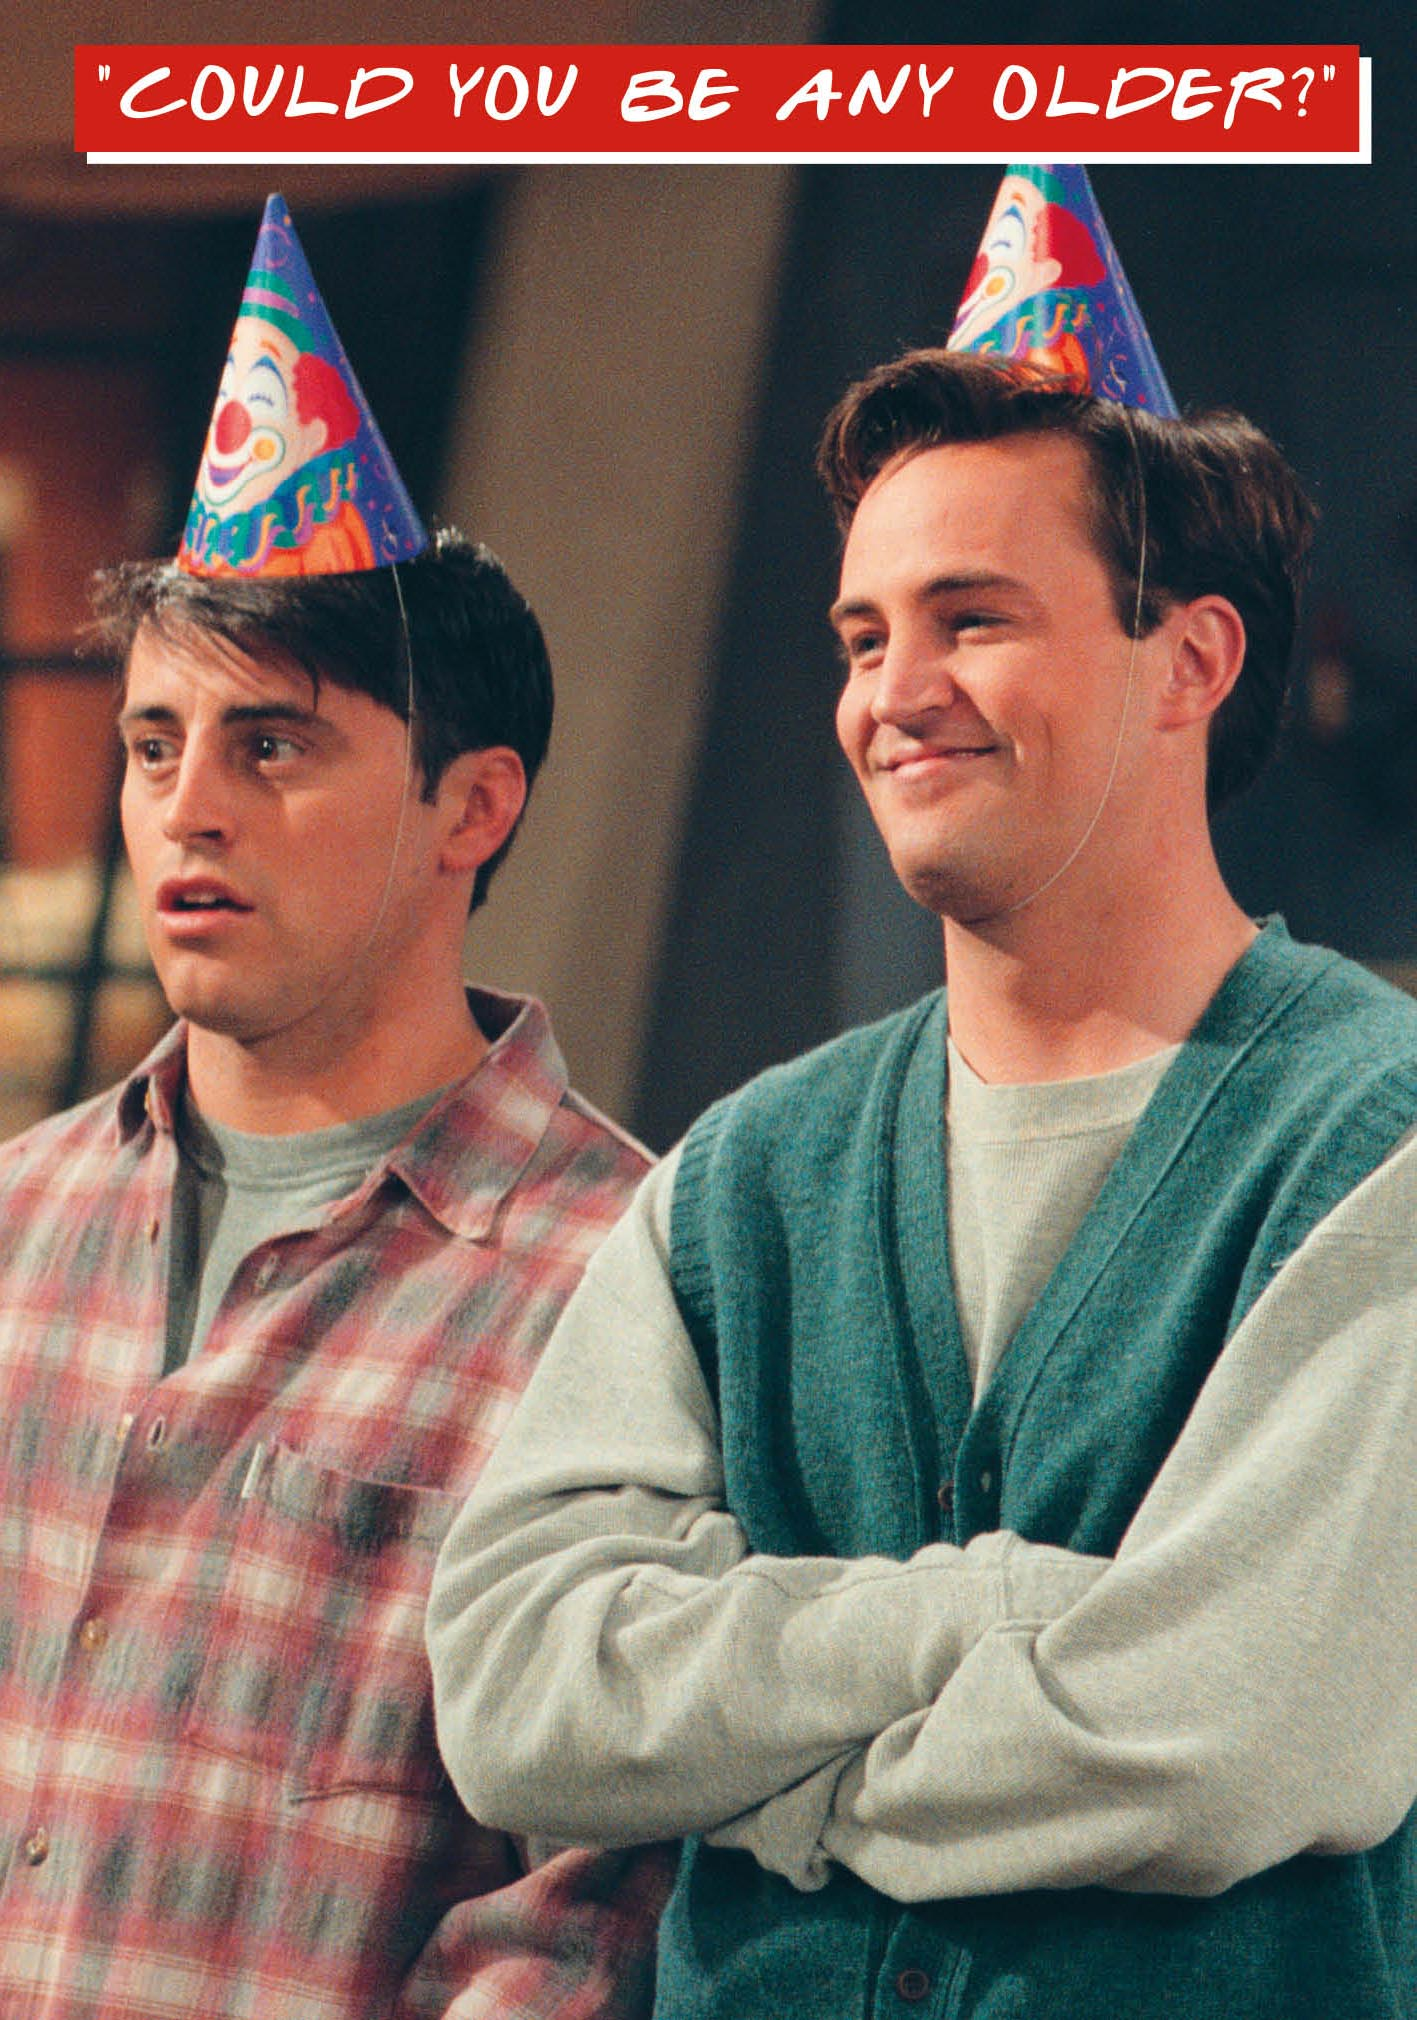 Friends Chandler & Joey 'Could you be any older?' Card